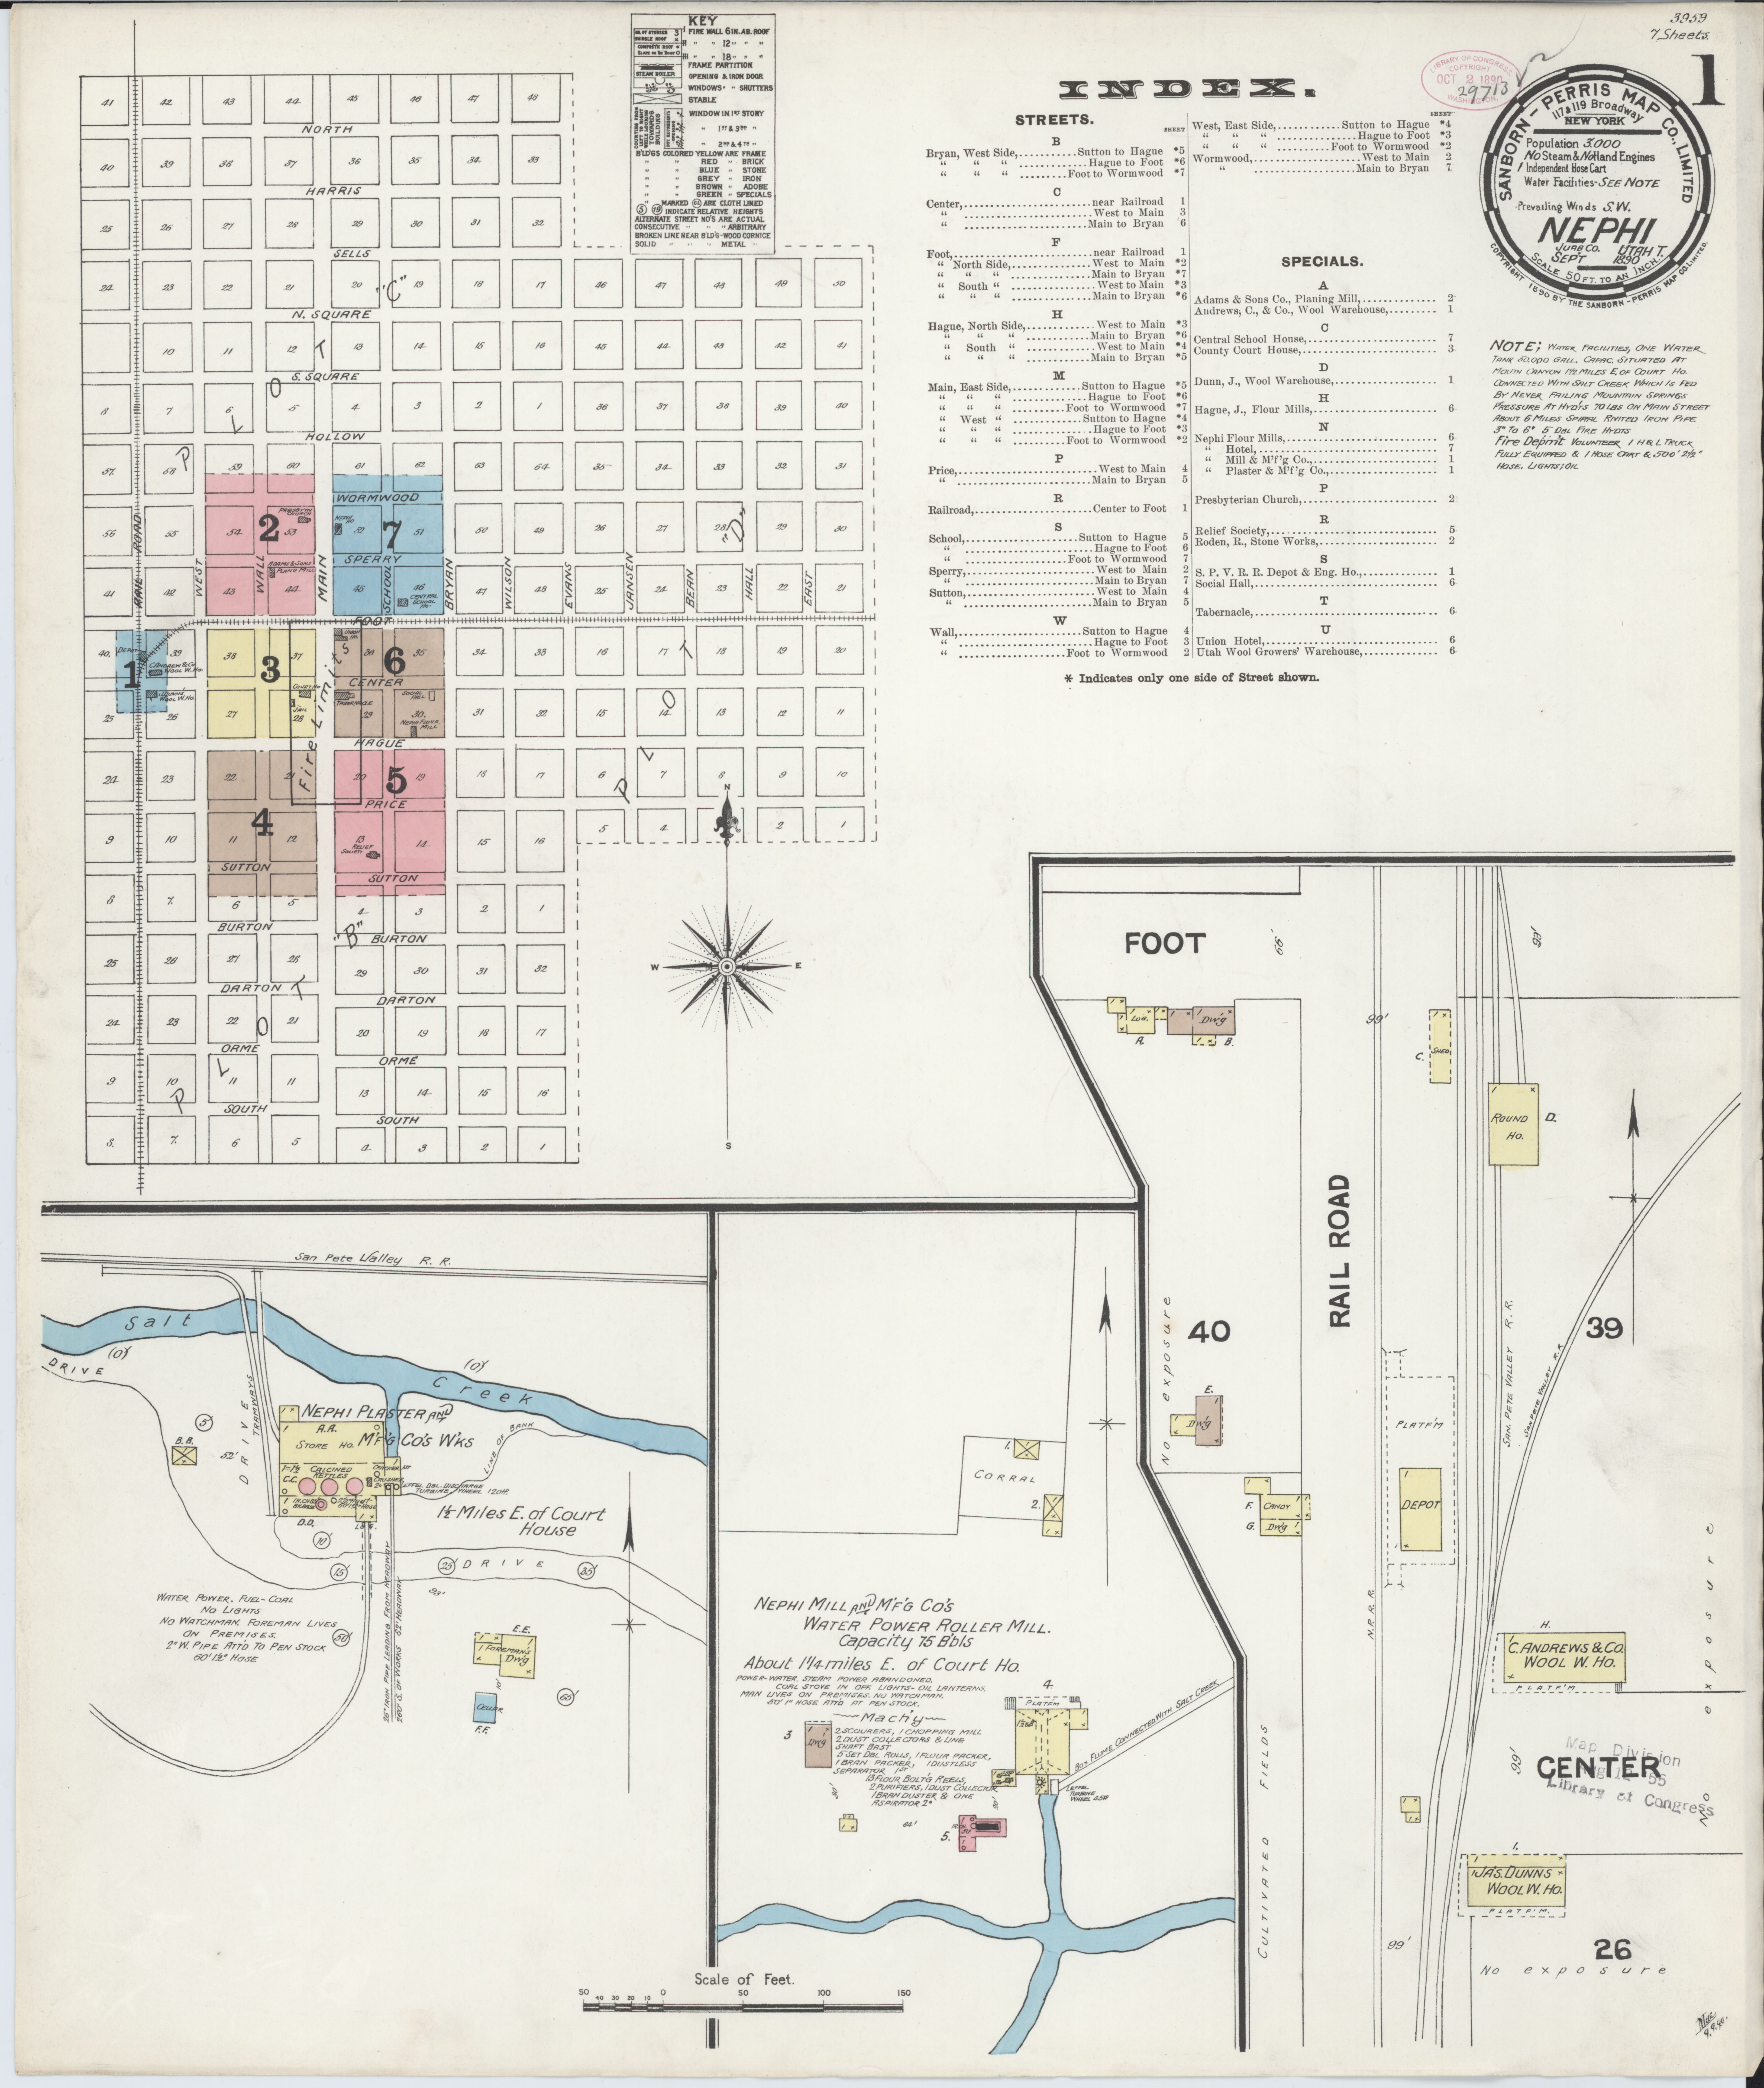 File:Sanborn Fire Insurance Map From Nephi, Juab County